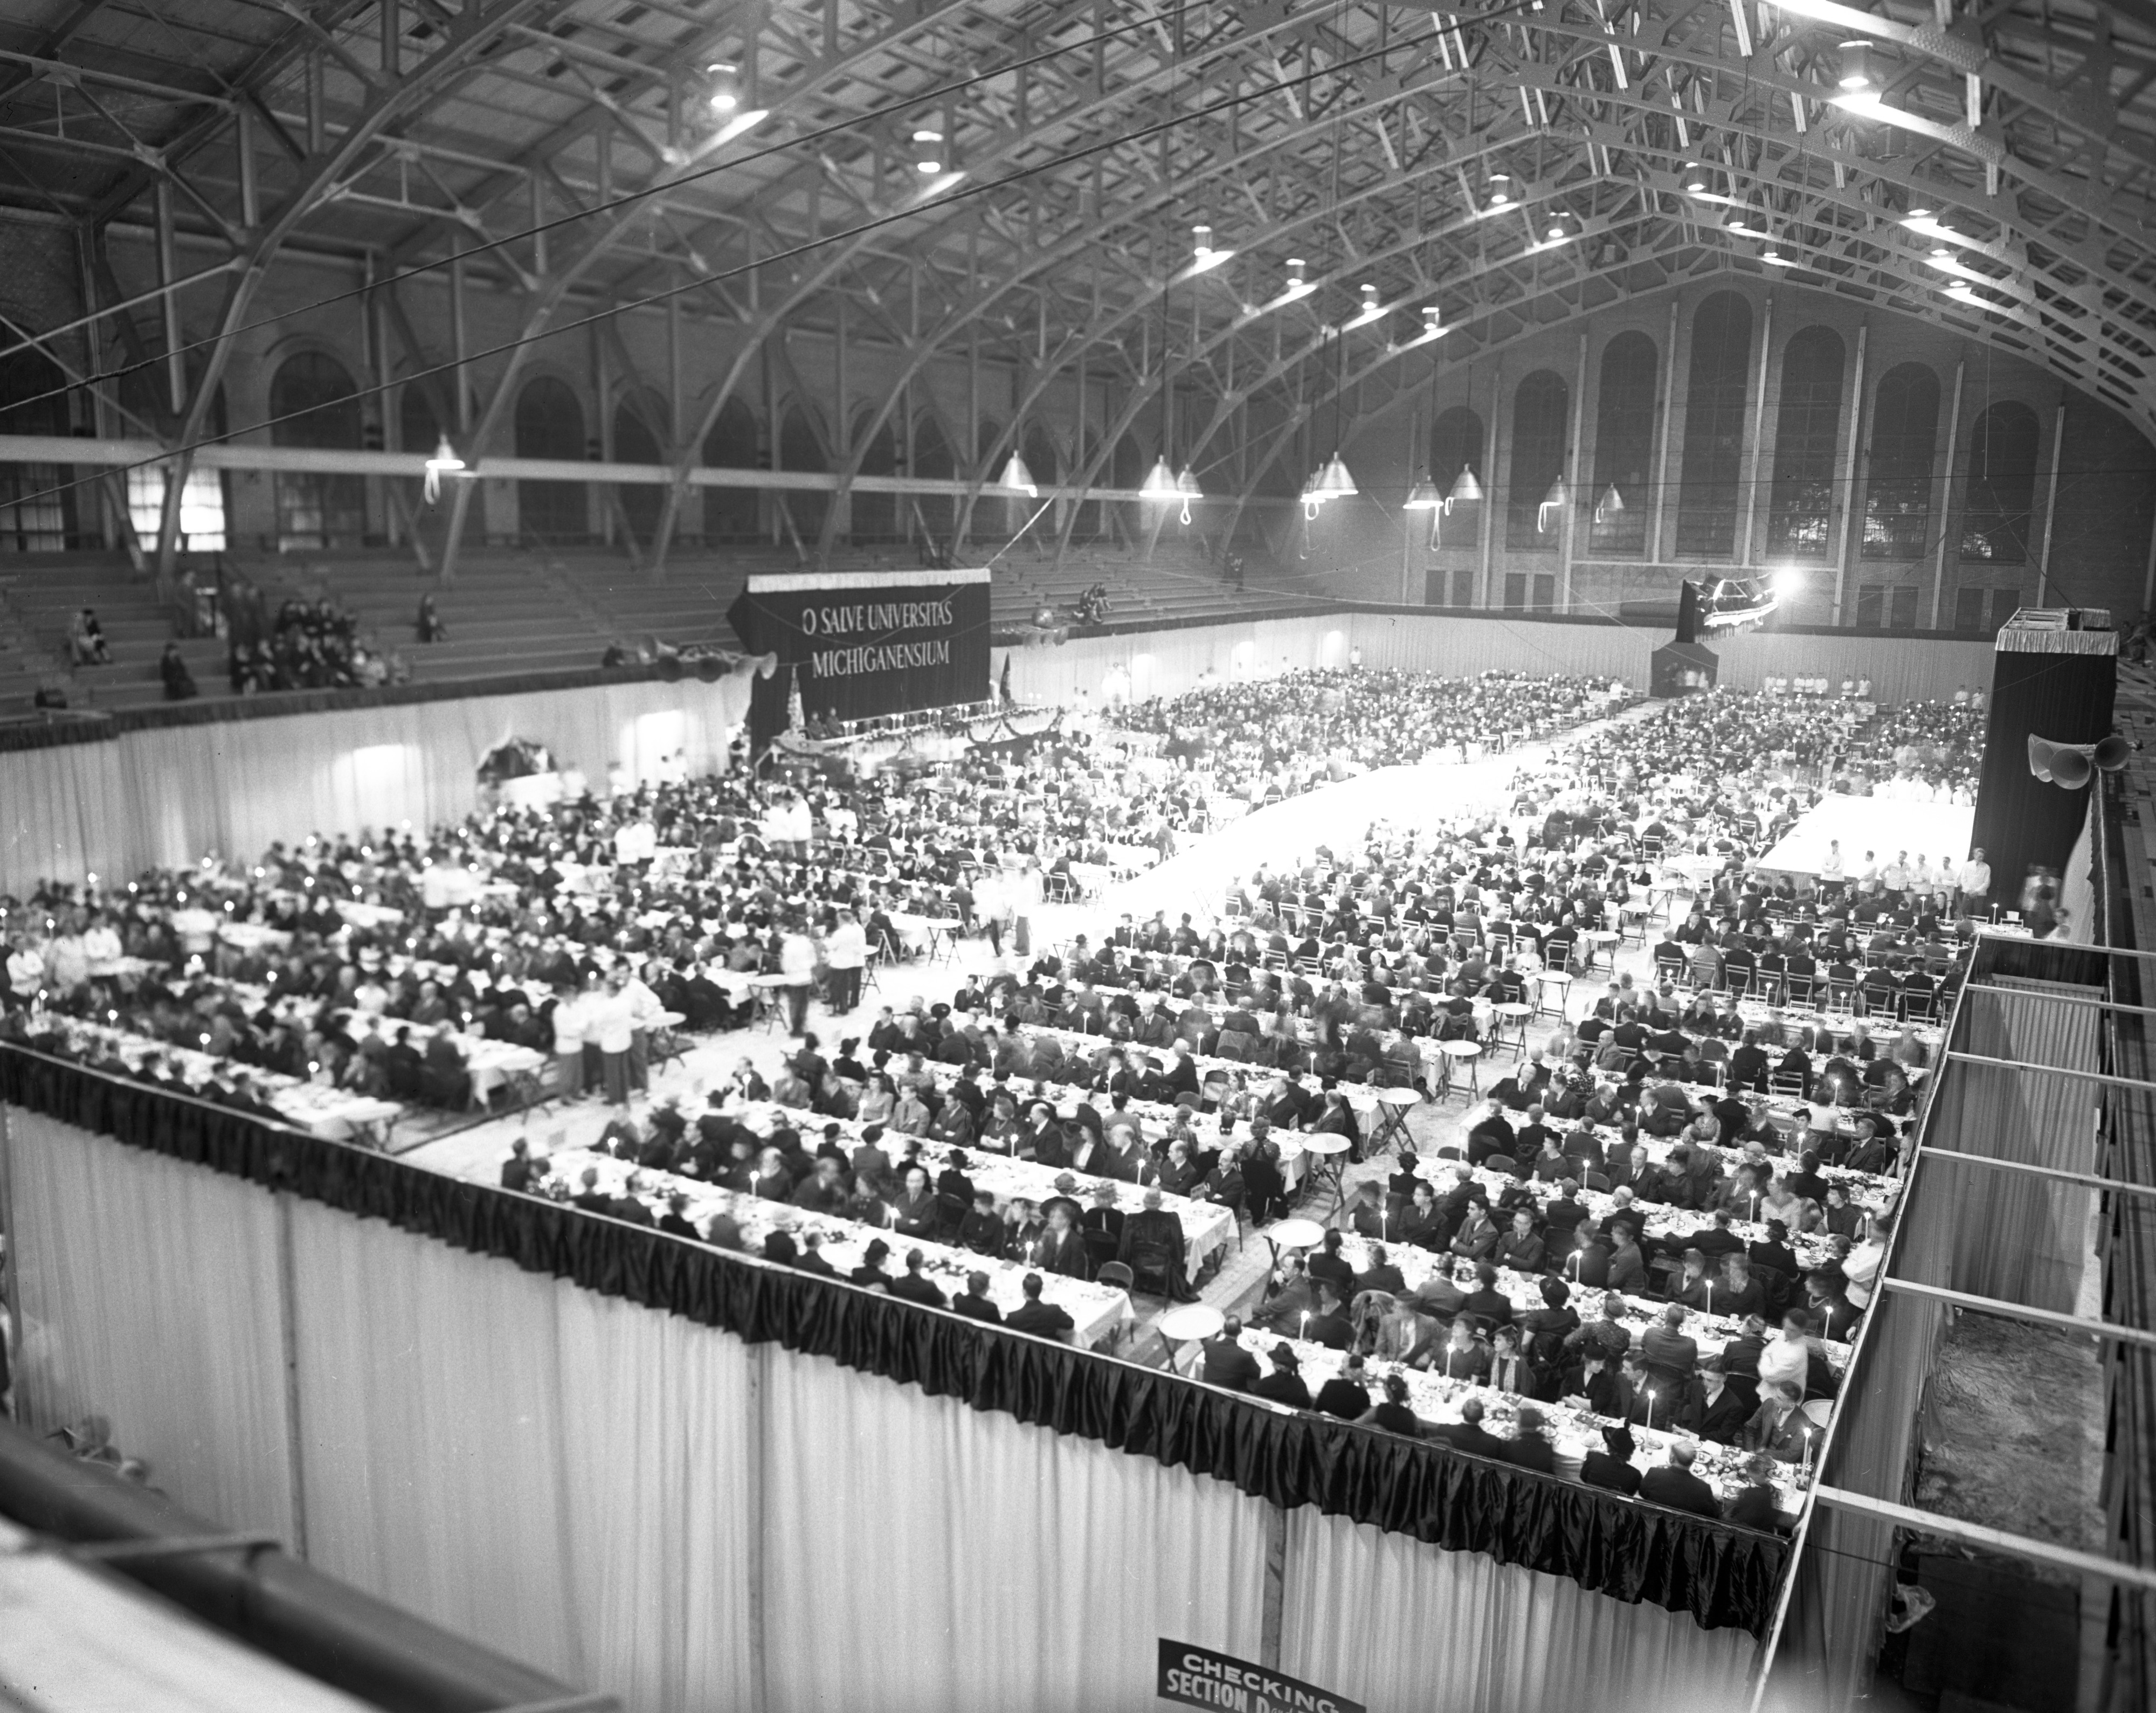 Yost Field House Filled To Capacity For Dinner Honoring University of Michigan President Ruthven, October 1939 image